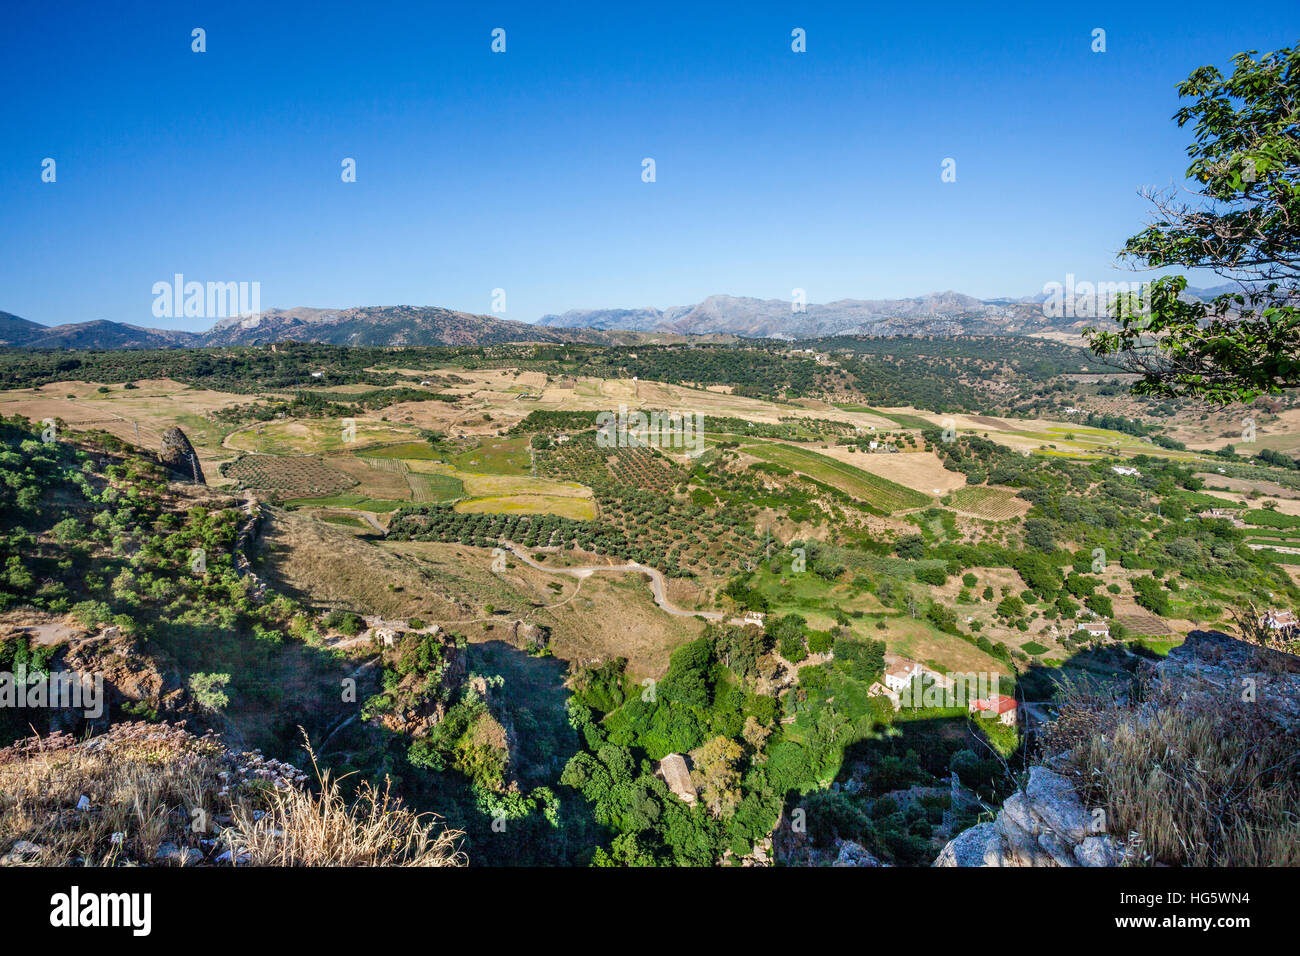 Spain, Andalusia, Province of Malags, Ronda, view of the countryside and the surrounding Sierras from Mirado de - Stock Image